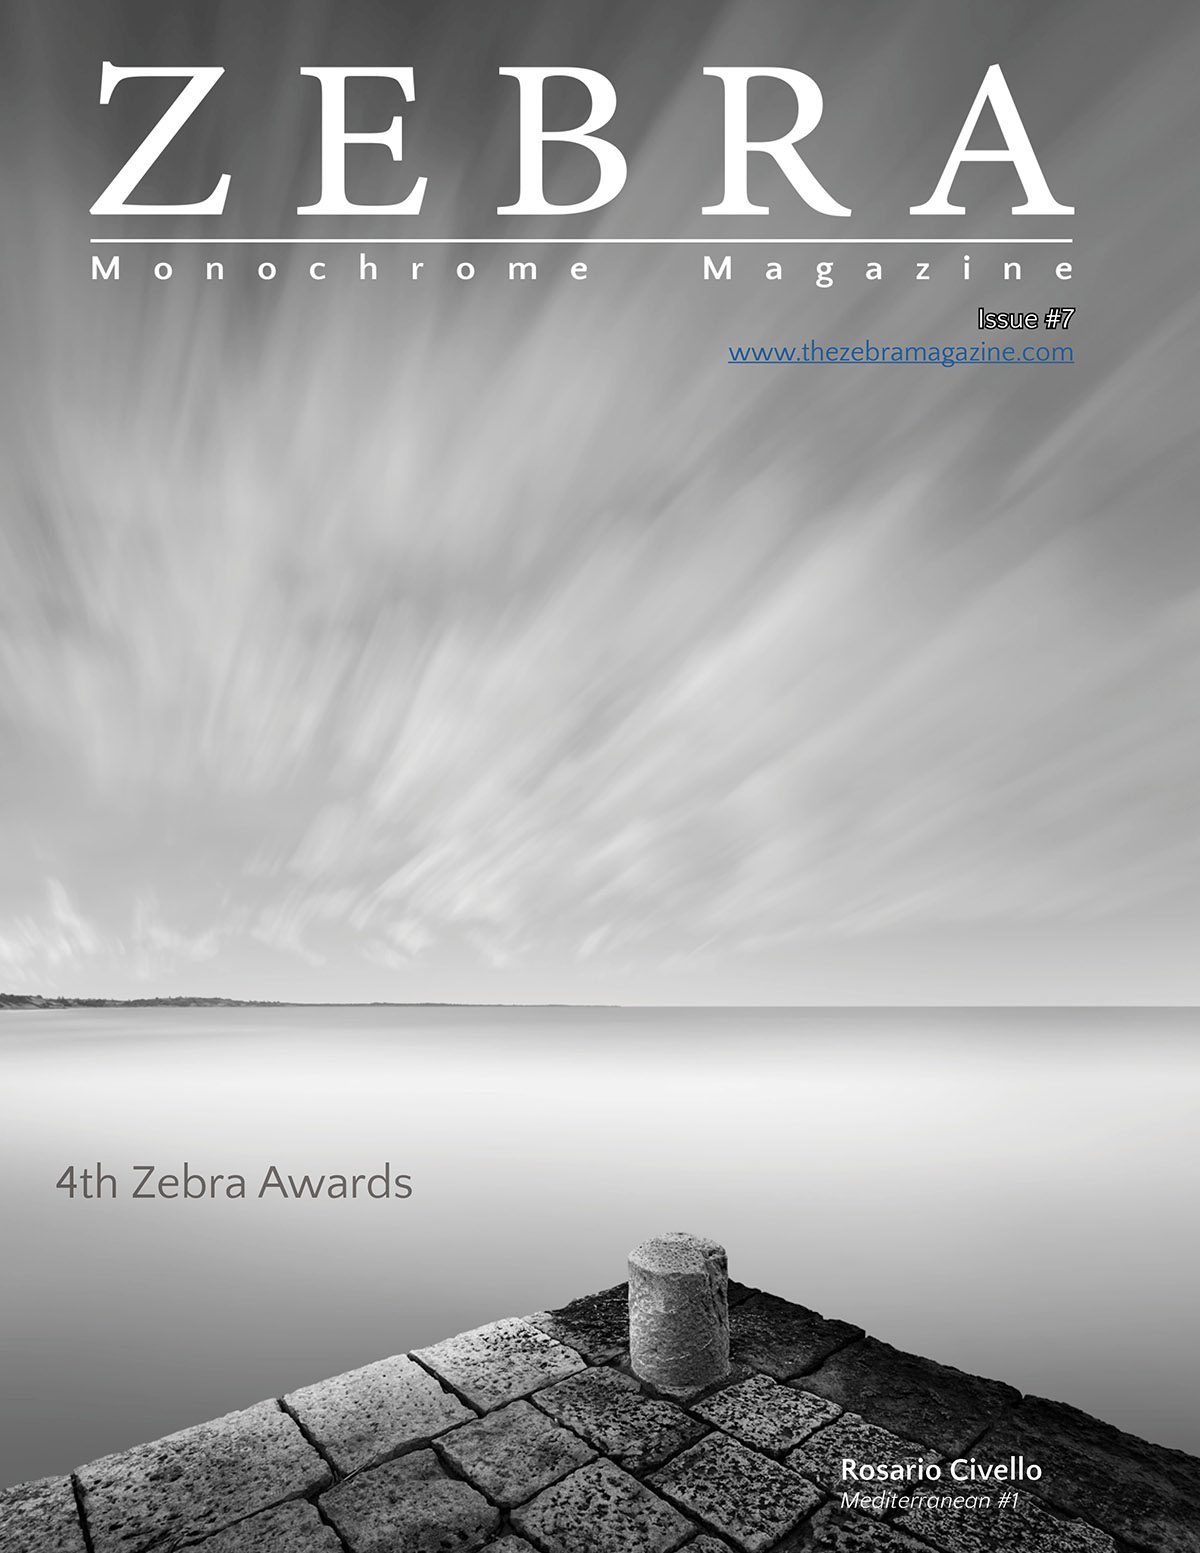 Zebra Magazine Issue 7 - 4th Zebra Awards